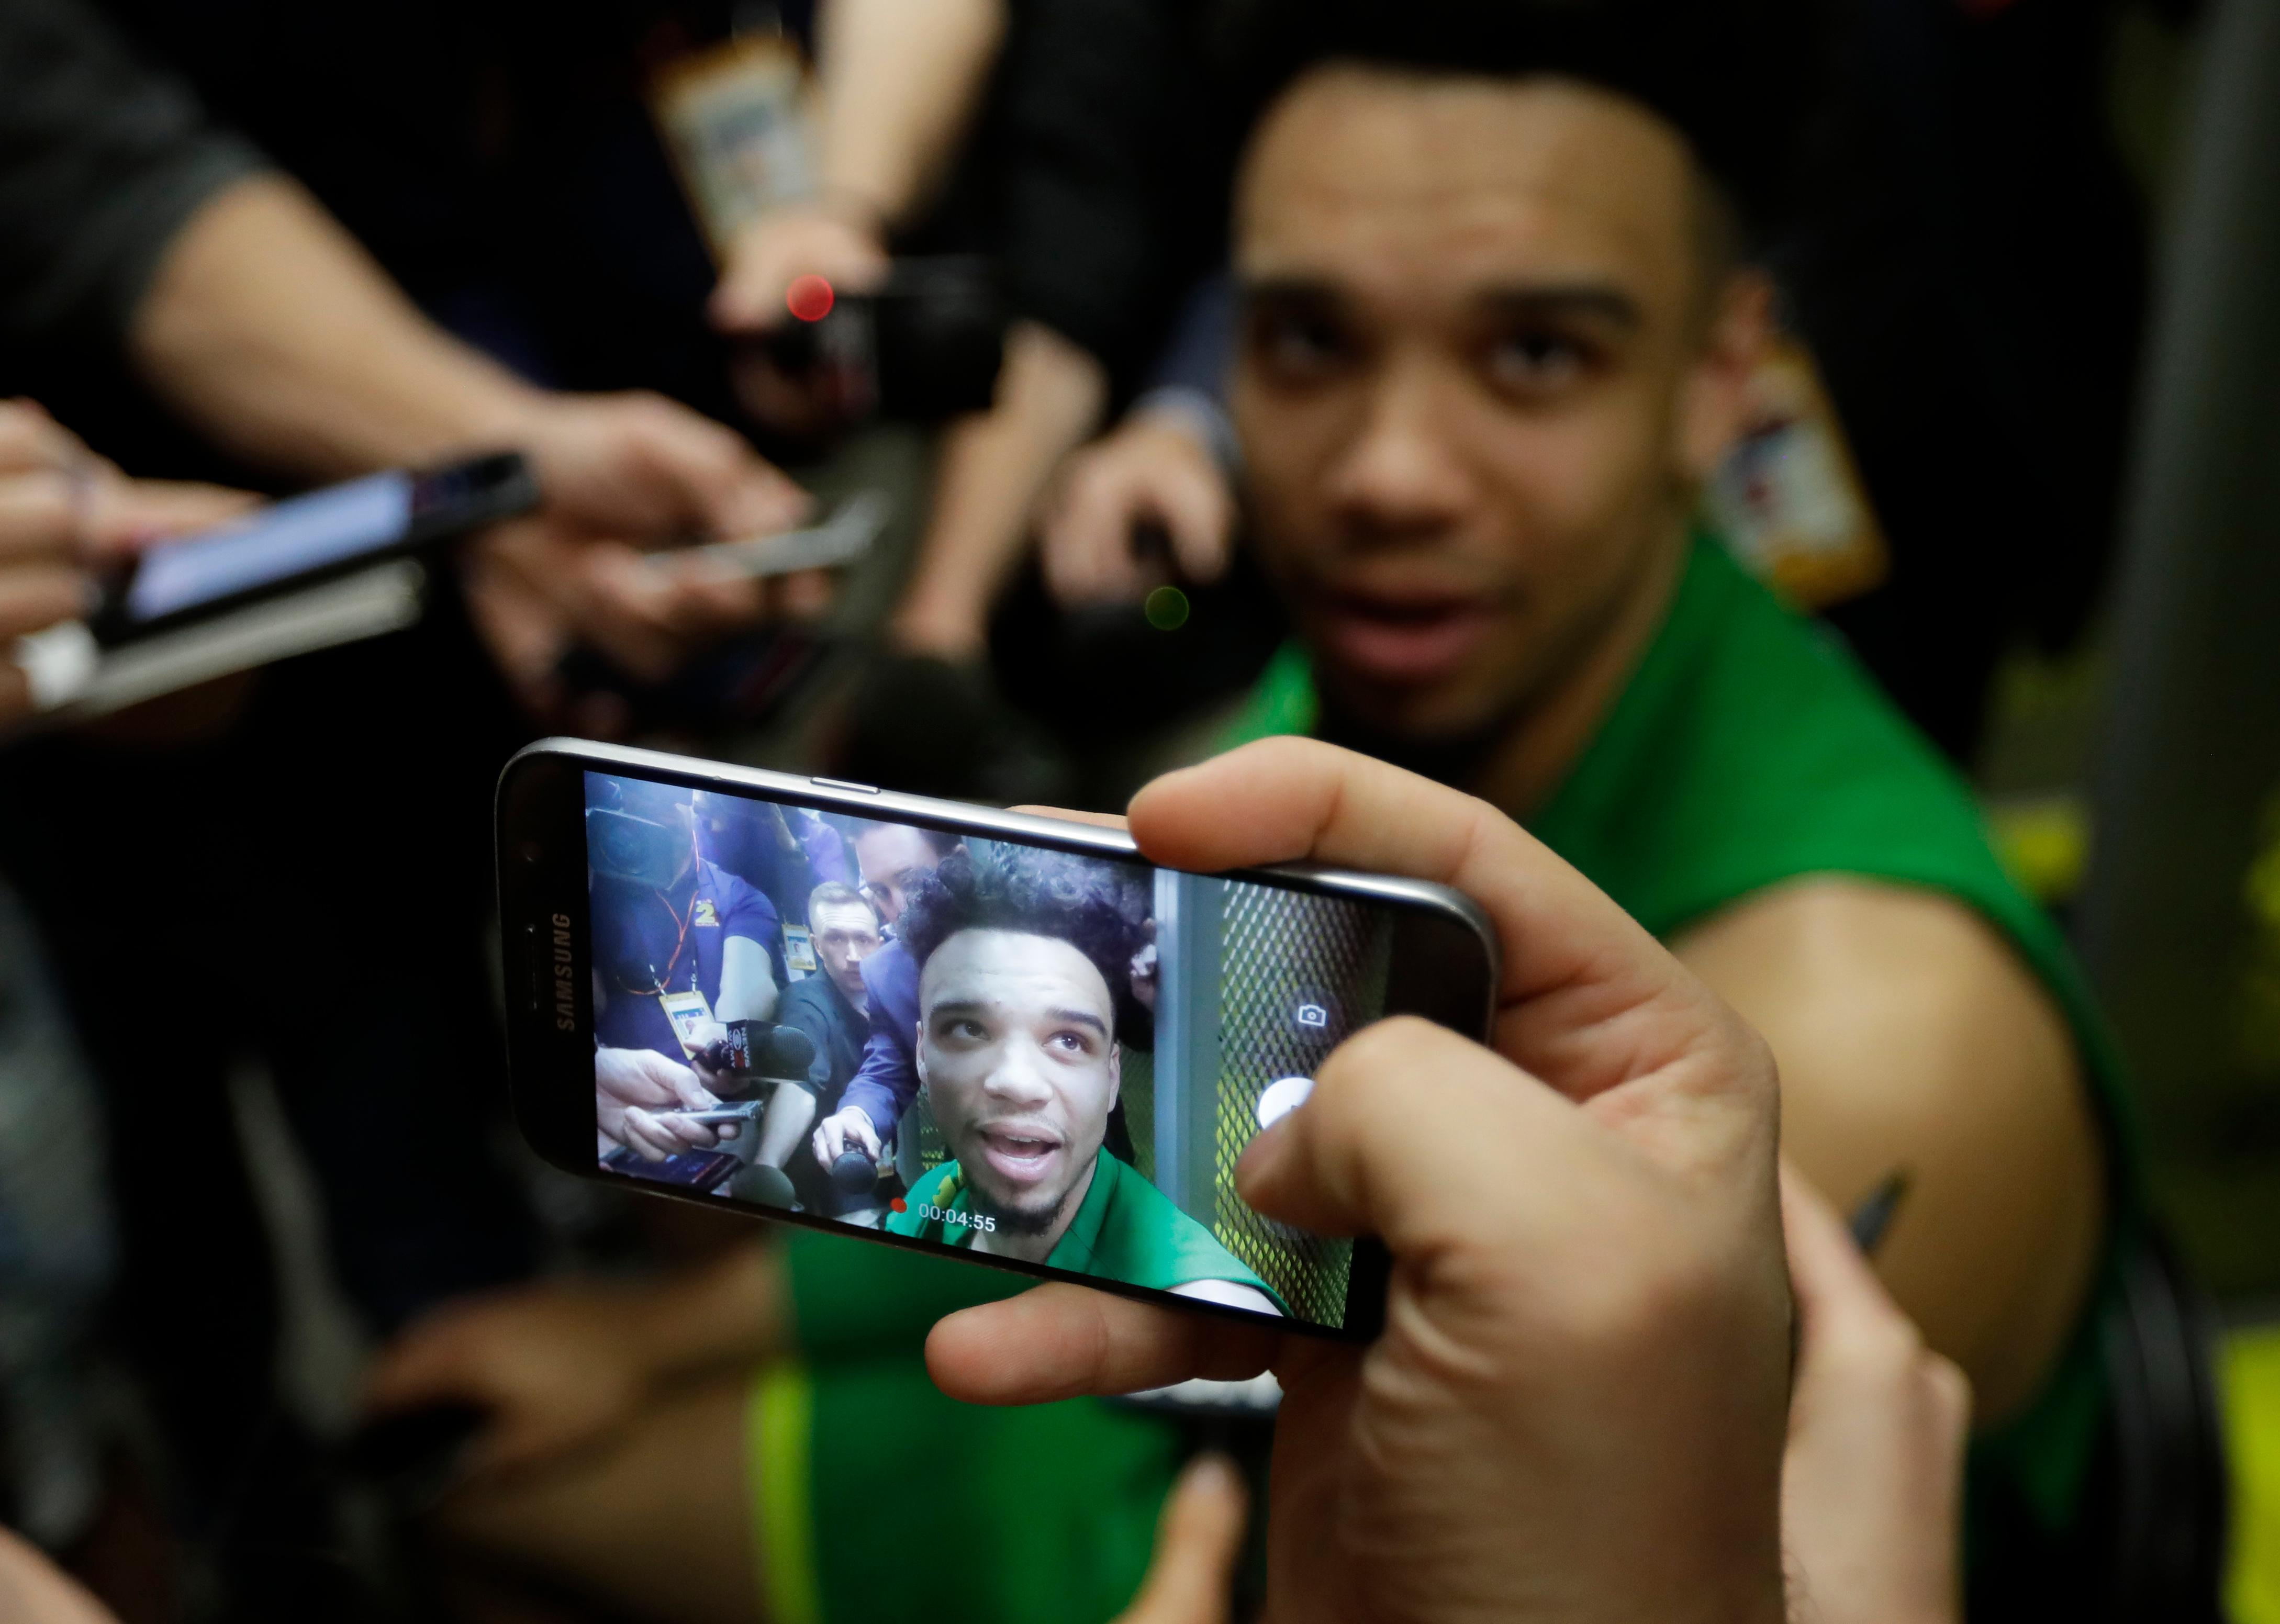 Oregon's Dillon Brooks answers questions after a practice session for their NCAA Final Four tournament college basketball semifinal game Thursday, March 30, 2017, in Glendale, Ariz. (AP Photo/David J. Phillip)